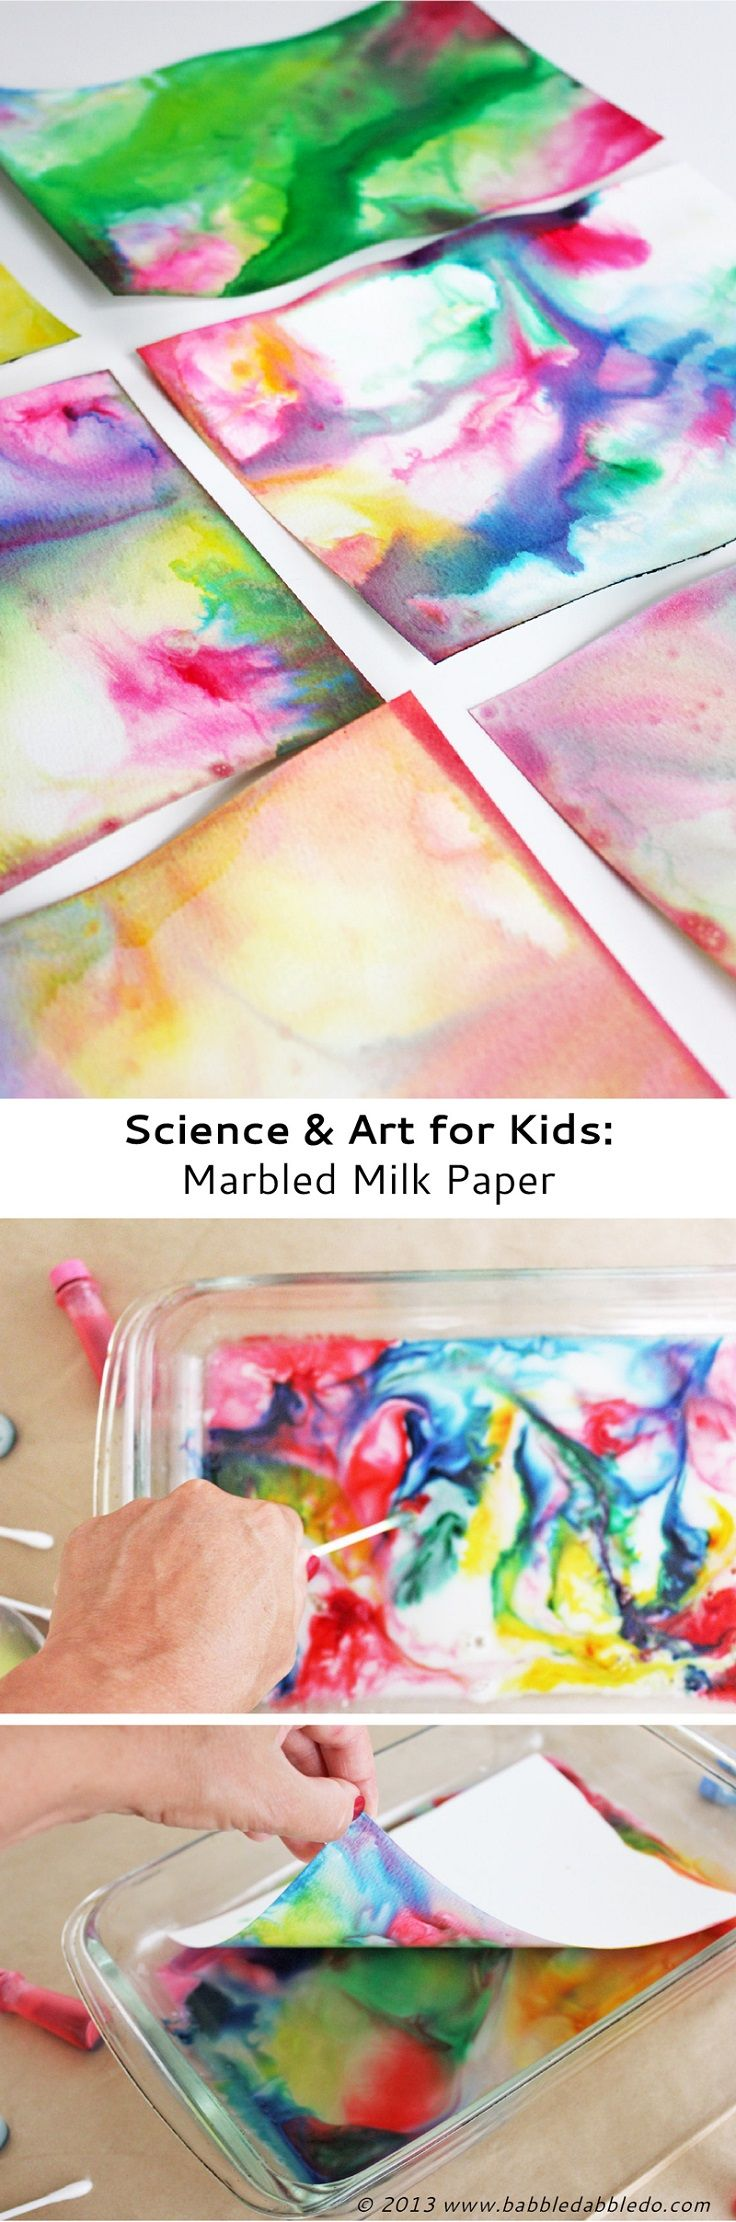 There is something about marbled surfaces that looks so chic. No wonder the marbling trend is huge lately. DIY-ers are getting crazy marbling everything they can think of. If you want to try marbling but are still skeptical, we encourage to look at these fantastic tutorials for making marbled paper. This is a great way to start marbling as paper is a great medium for it. You can use marbled paper to create stunning art, envelopes, garlands etc. Marbling paper can be a great craft to try with…